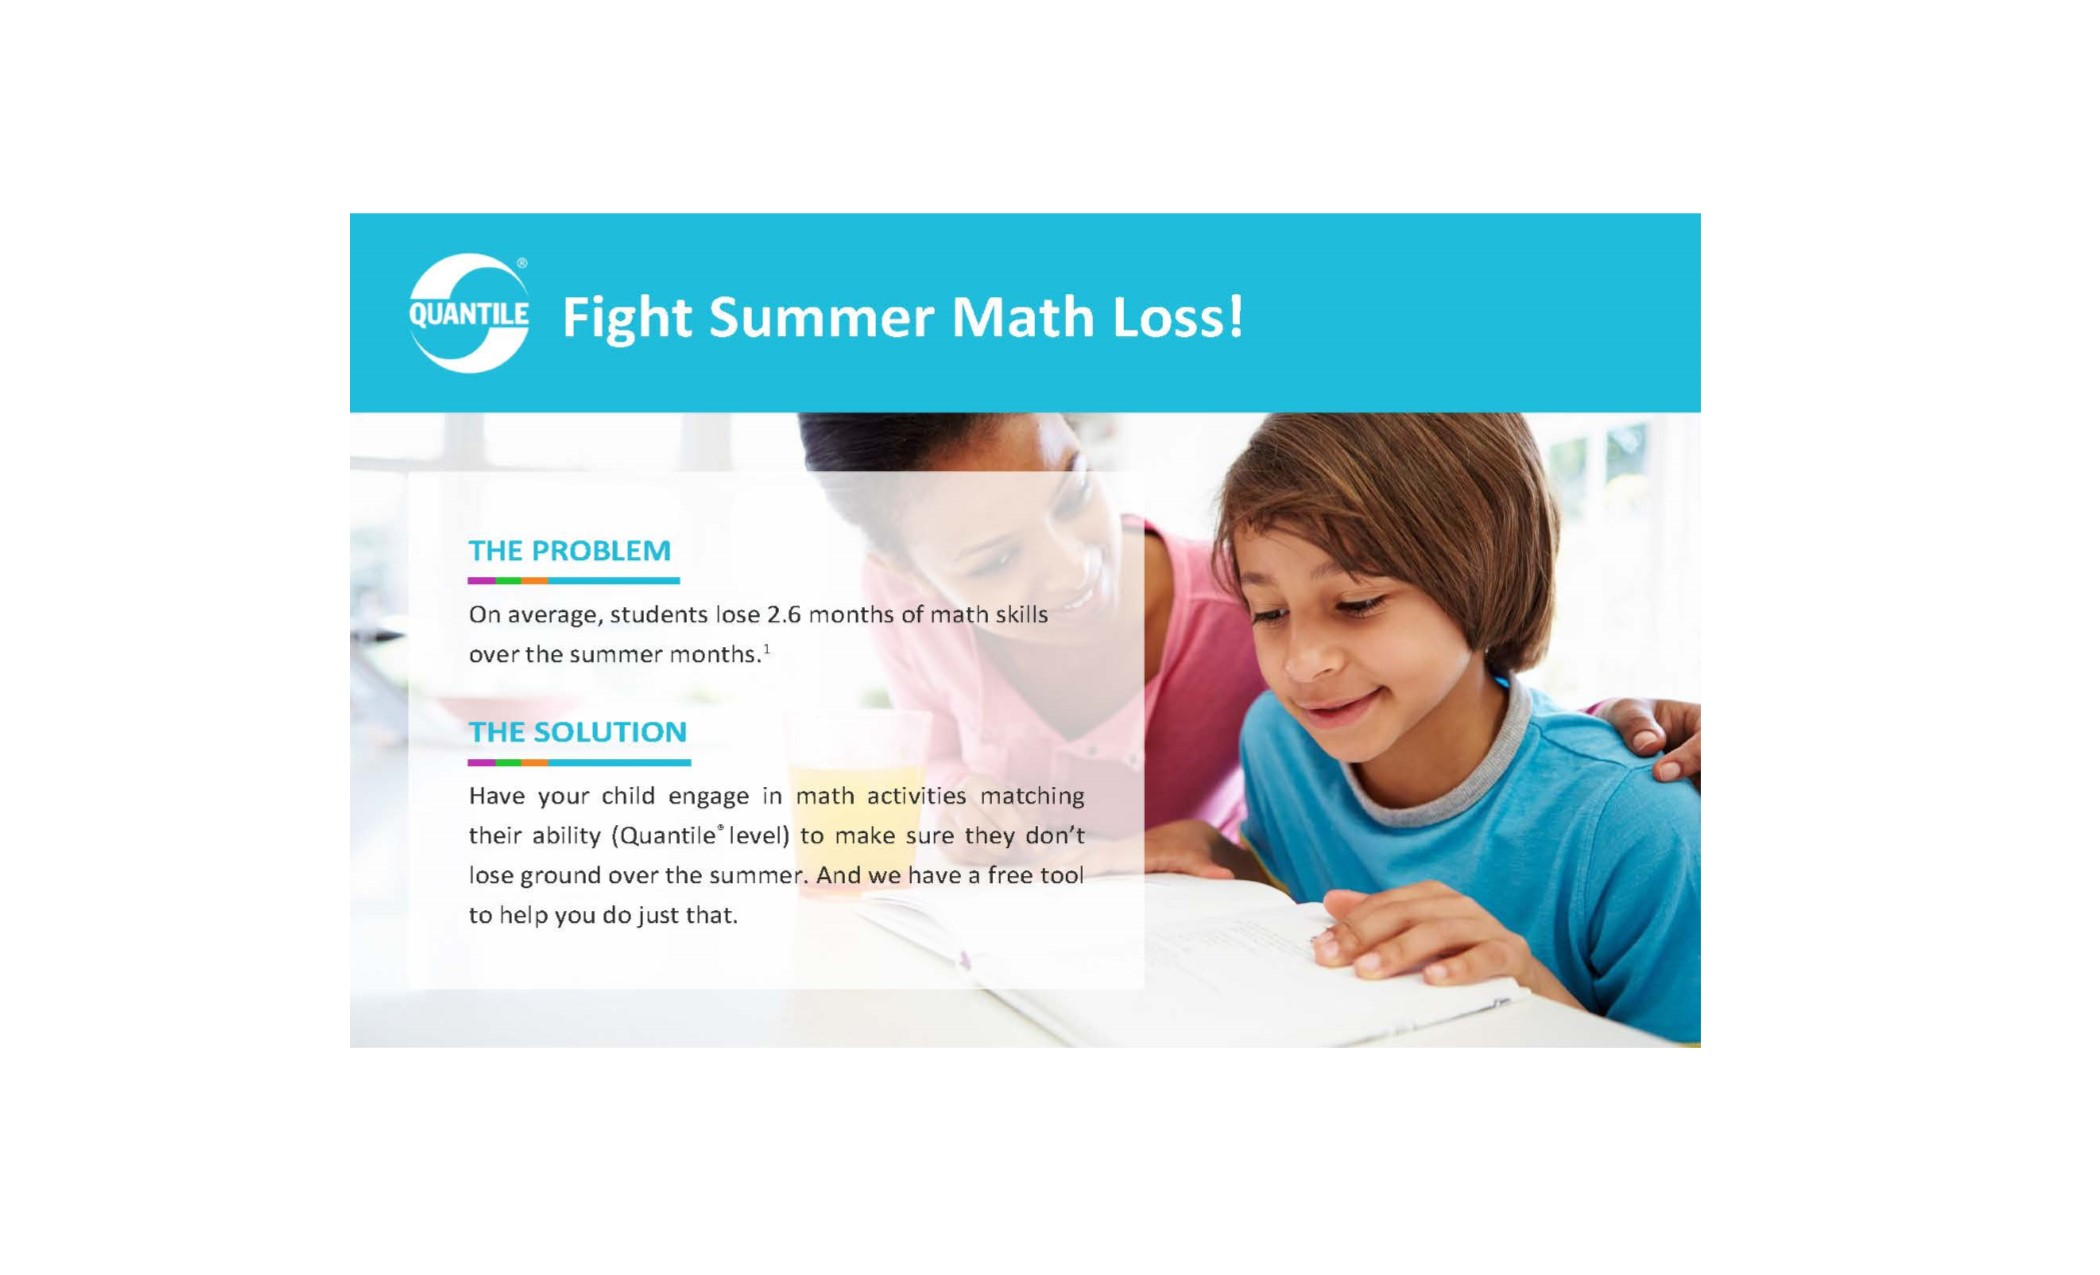 Fight Summer Math Loss with the Math Challenge!